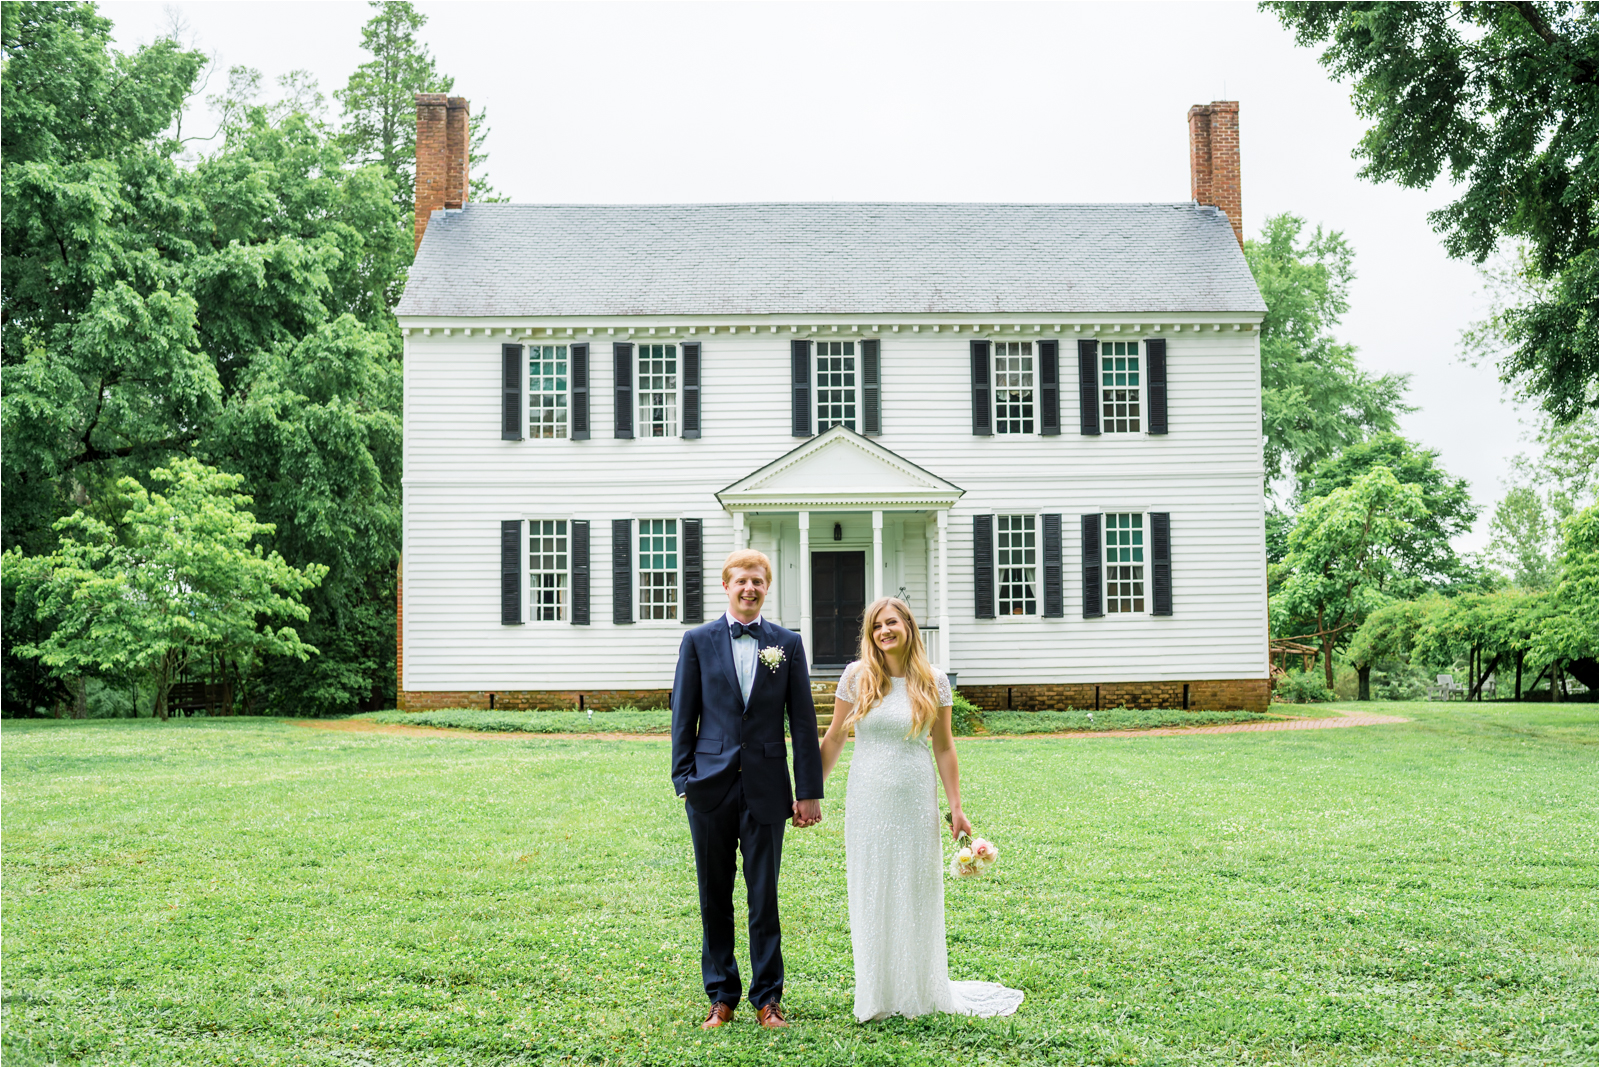 wedding-elopement-tuckahoe-plantation-gardens-bridge-richmond-virginia-rva-jessica-capozzola-focus-on-joy-photography